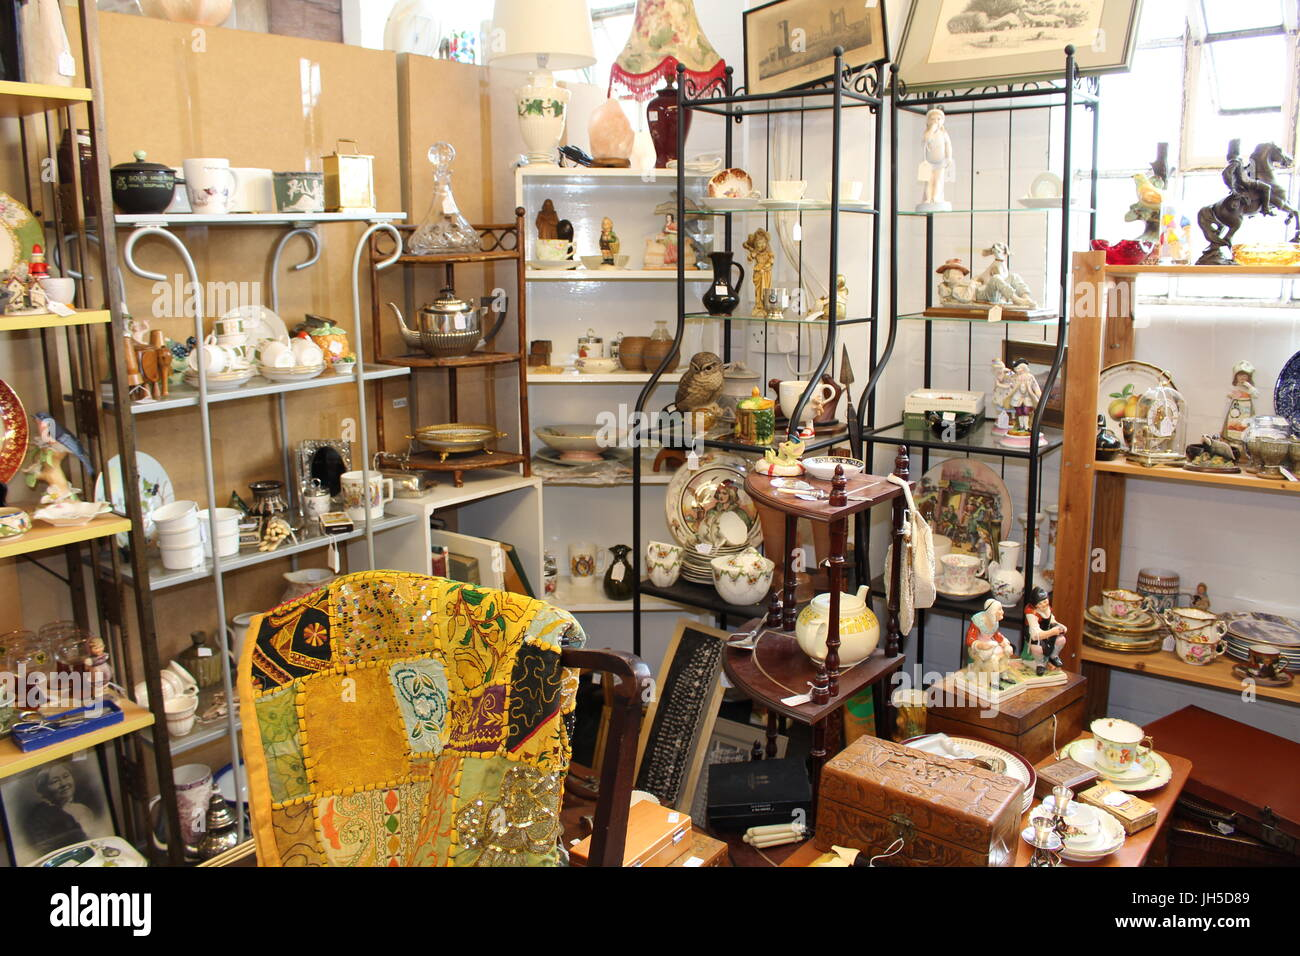 display in a charity shop, thrift shop, thrift shopping, antiques, bargain hunting, antique store, second hand store, - Stock Image